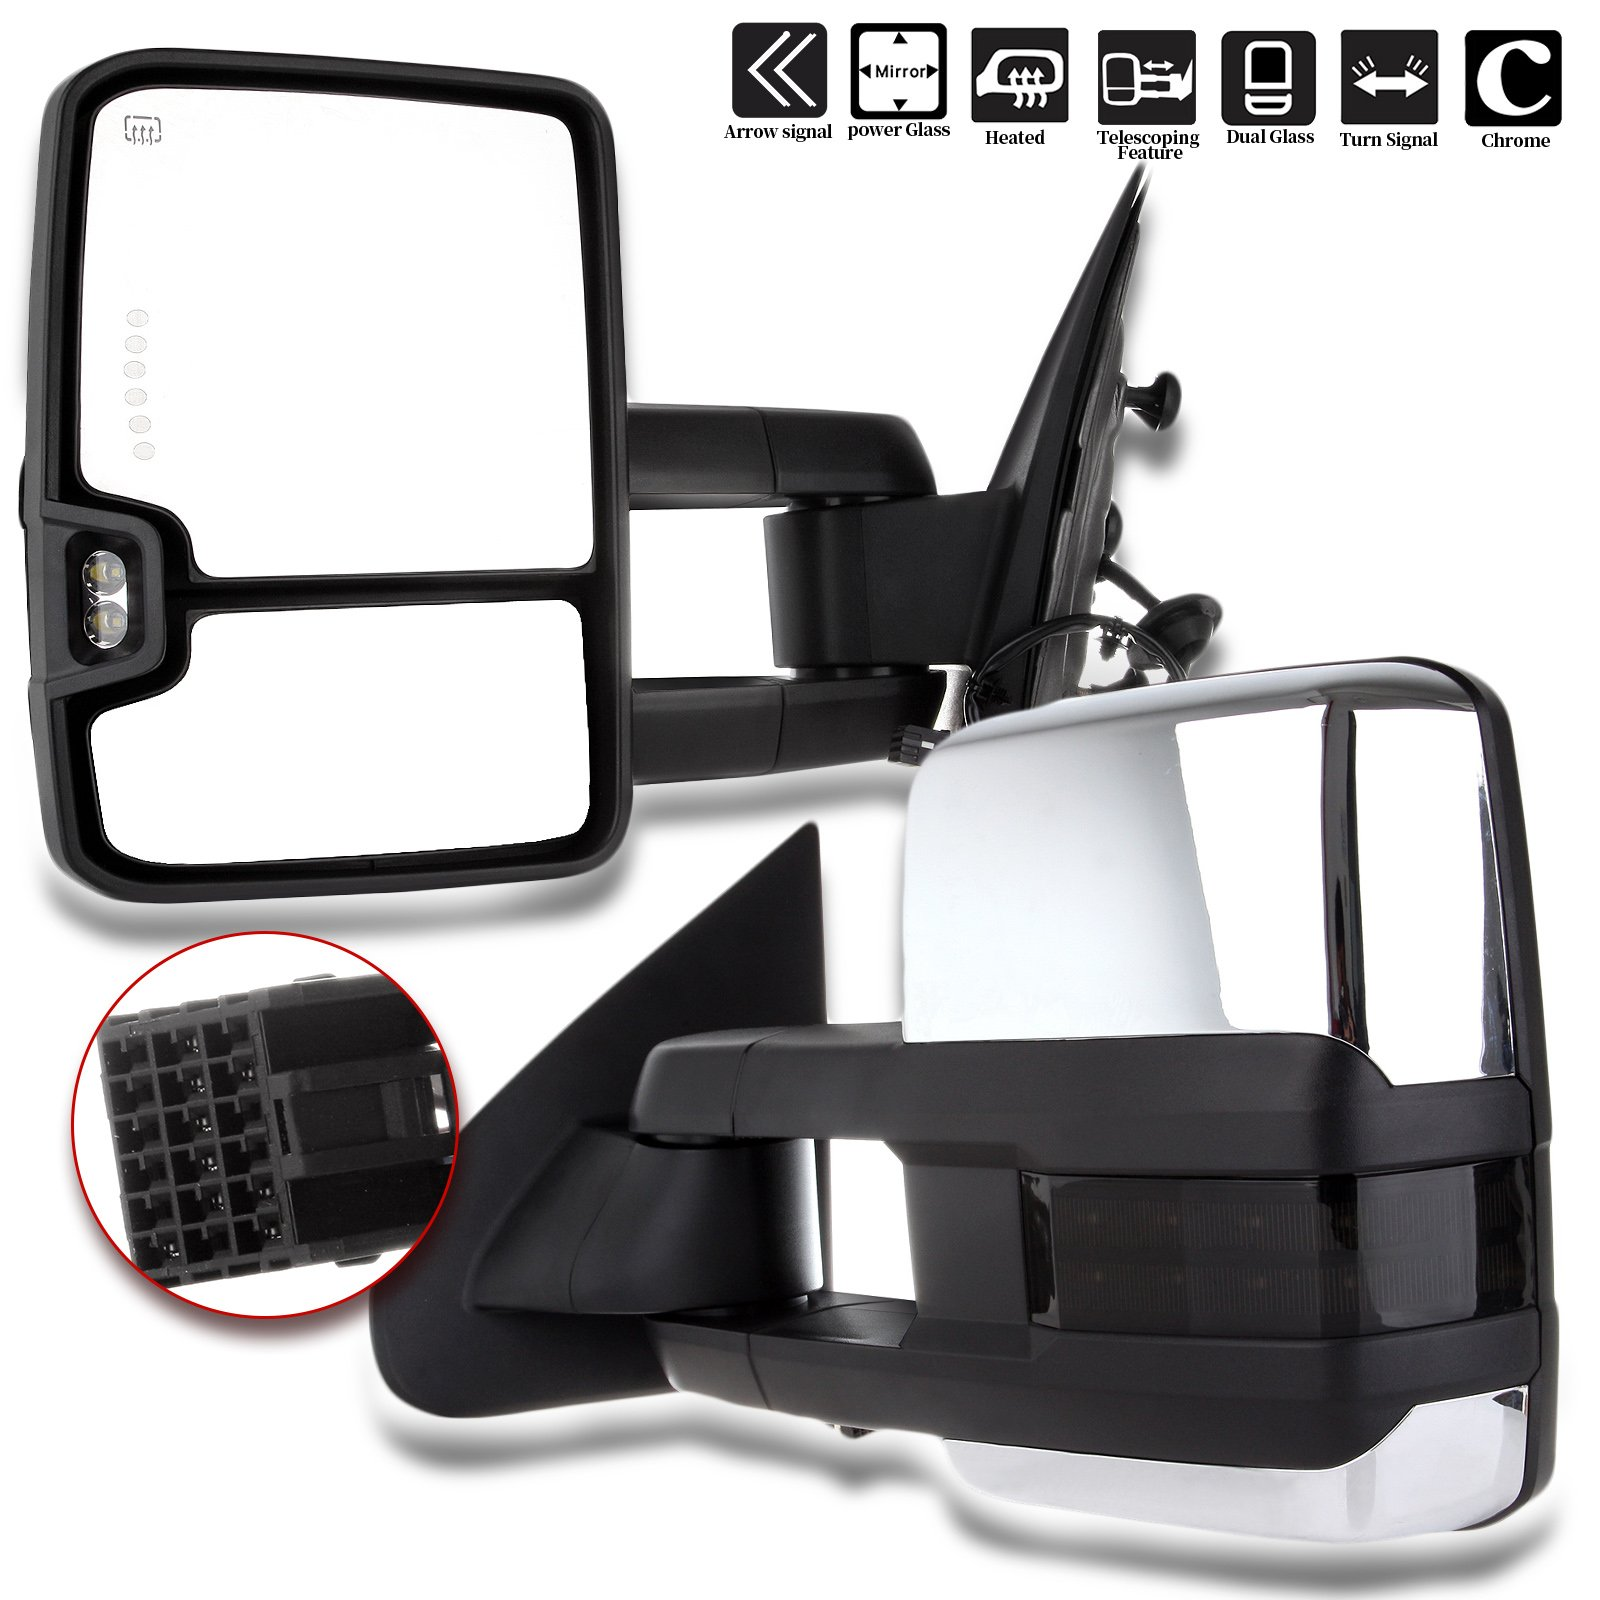 For Chevy GMC Towing Mirrors SCITOO Chrome Rear View Mirrors for 2014-2018 Chevy Silverado/GMC Sierra 1500 2015-2018 Chevy Silverado/GMC Sierra2500 HD 3500HD with Power Heated Signal Backup Light